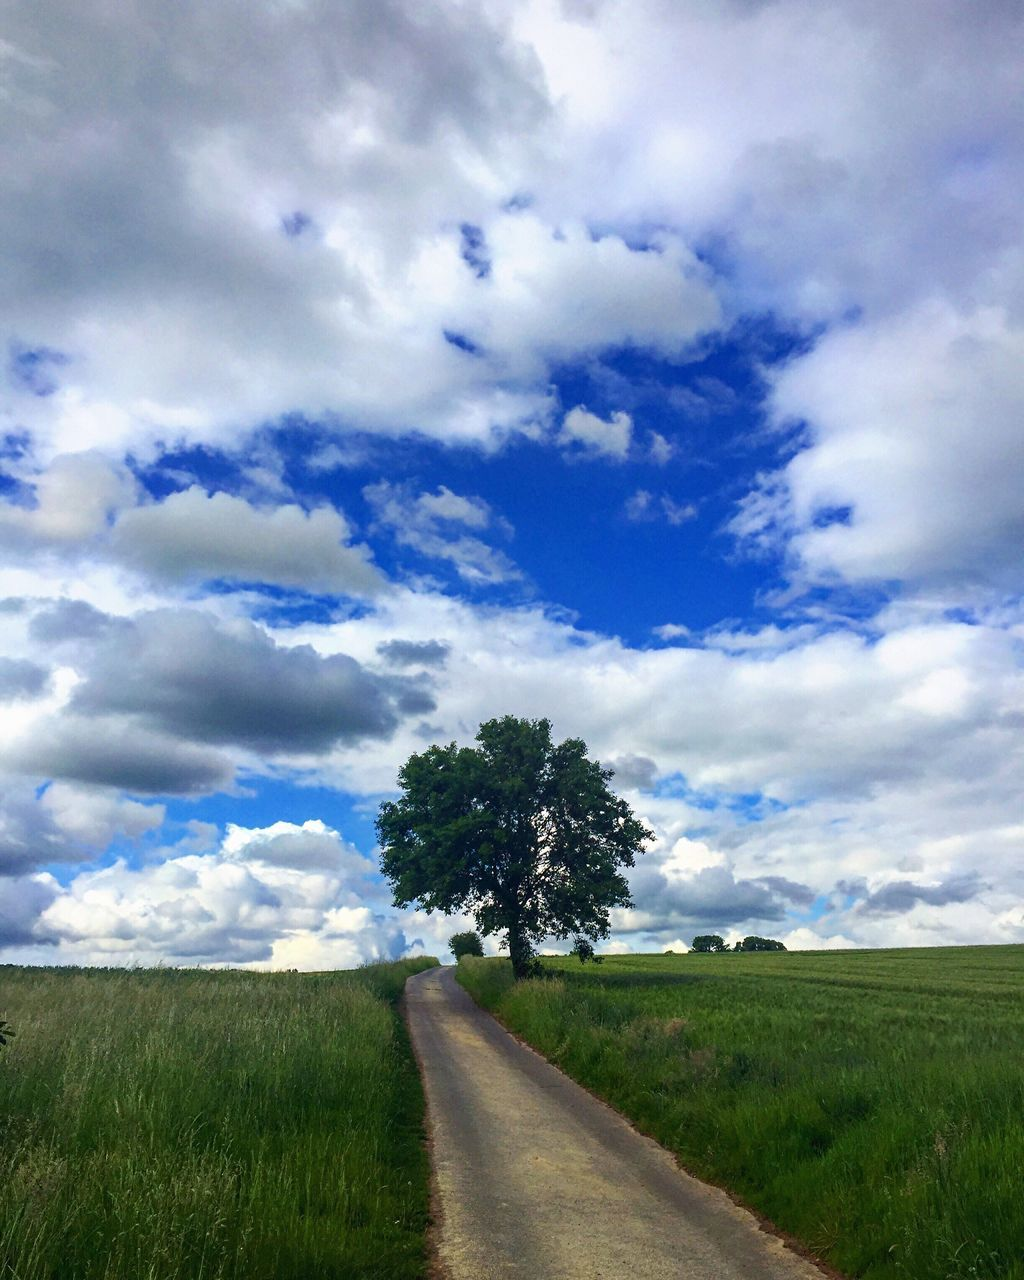 grass, tranquil scene, road, the way forward, landscape, field, cloud - sky, sky, nature, tranquility, scenics, tree, diminishing perspective, day, beauty in nature, no people, growth, transportation, outdoors, rural scene